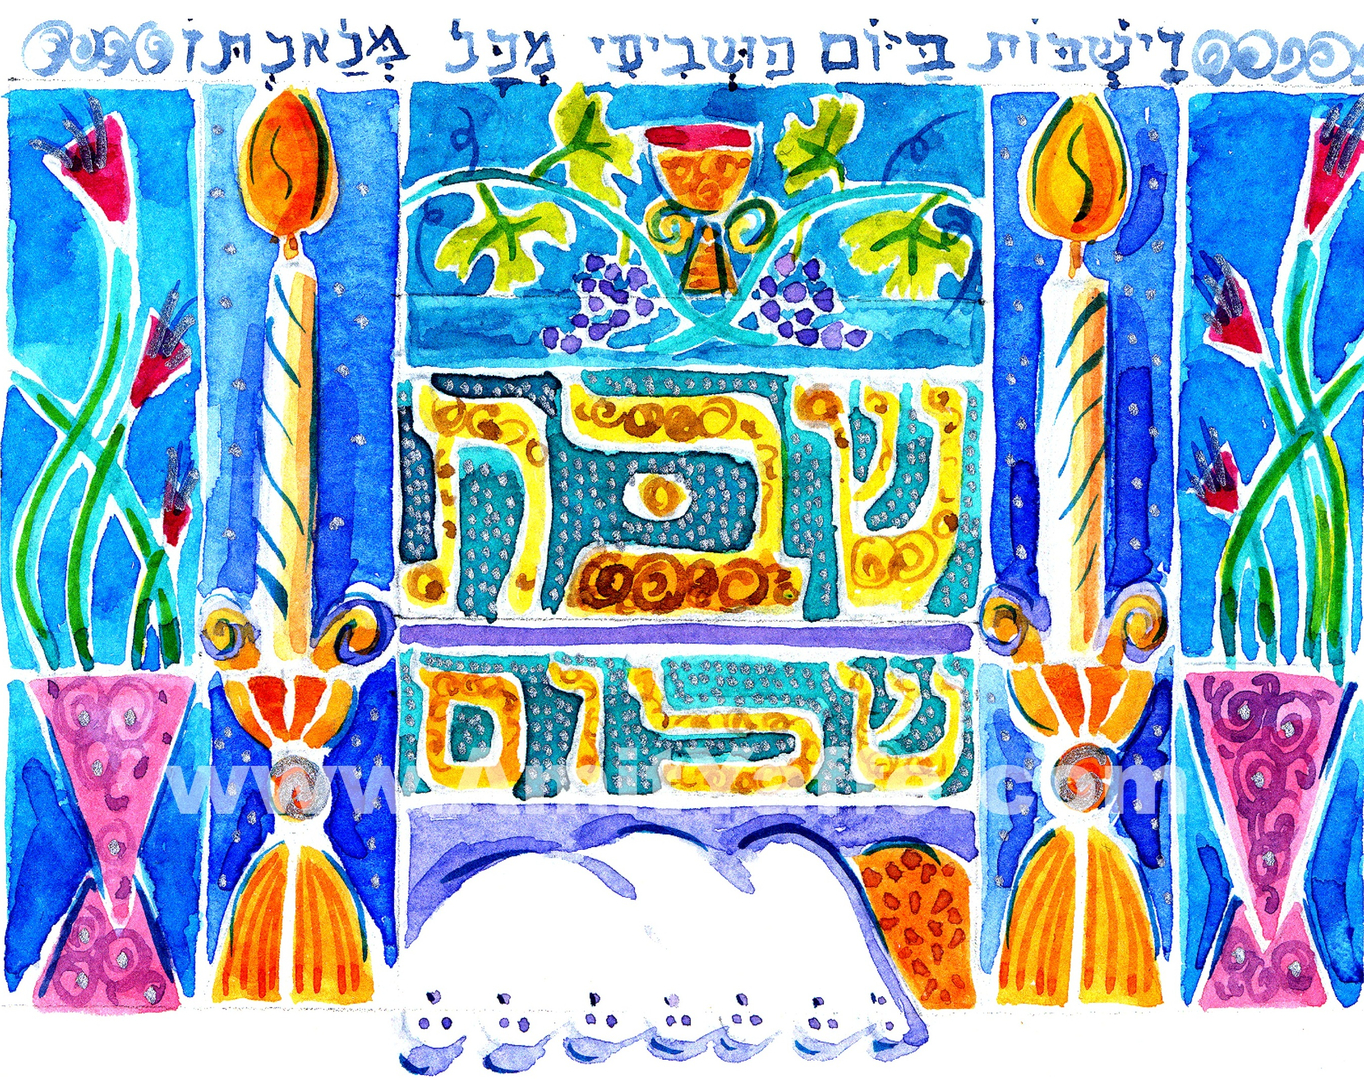 graphic about Shabbat Blessings Printable identified as Kabbalat Shabbat - Congregation Bnai Israel